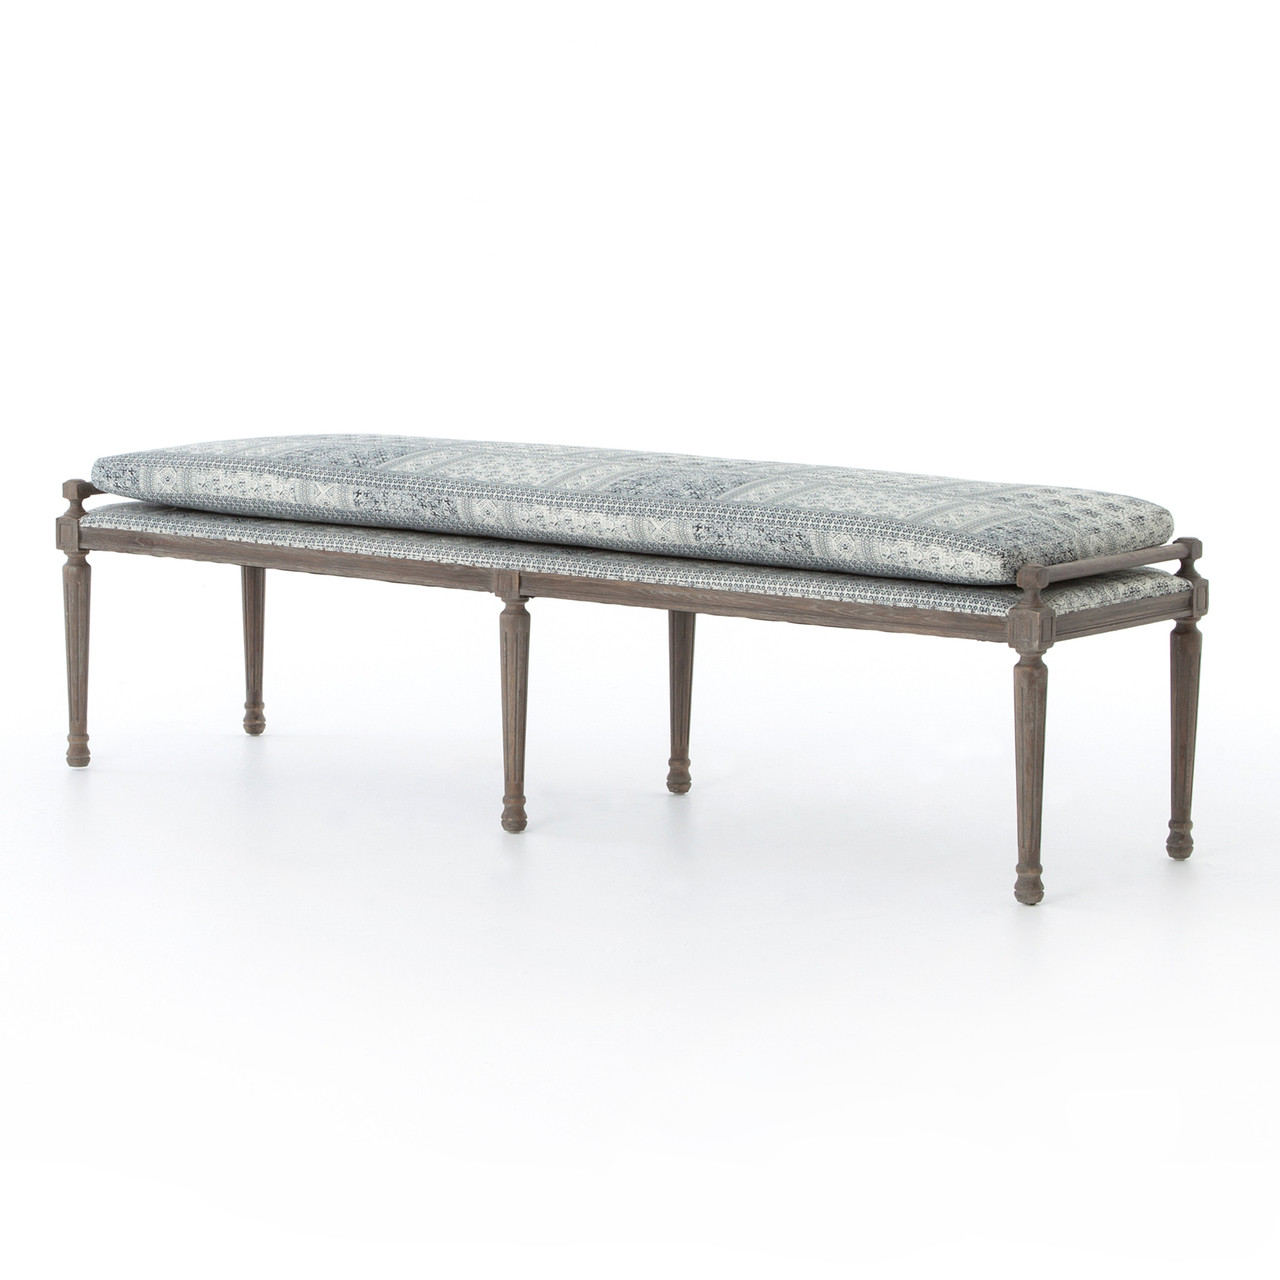 Lucille Batik Indigo Upholstered Bed End Bench | Zin Home